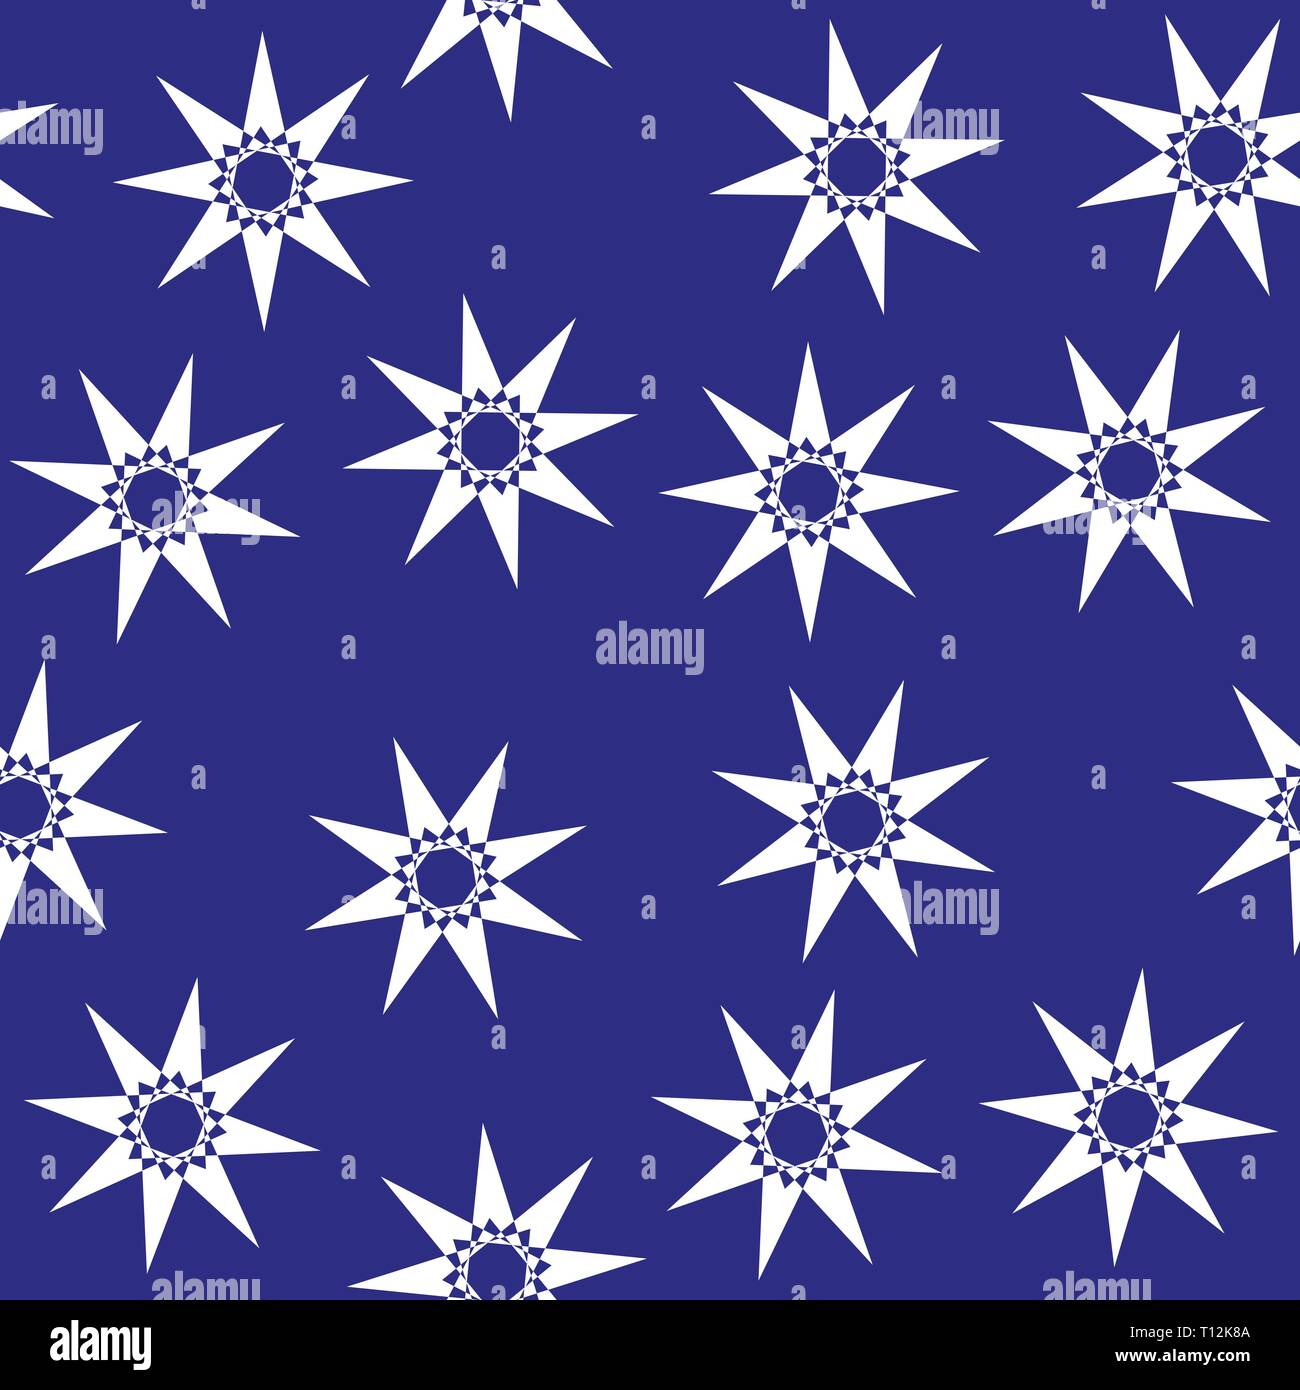 Stars Room Decor Cute Stars Seamless Pattern Nursery Illustration Good For Room